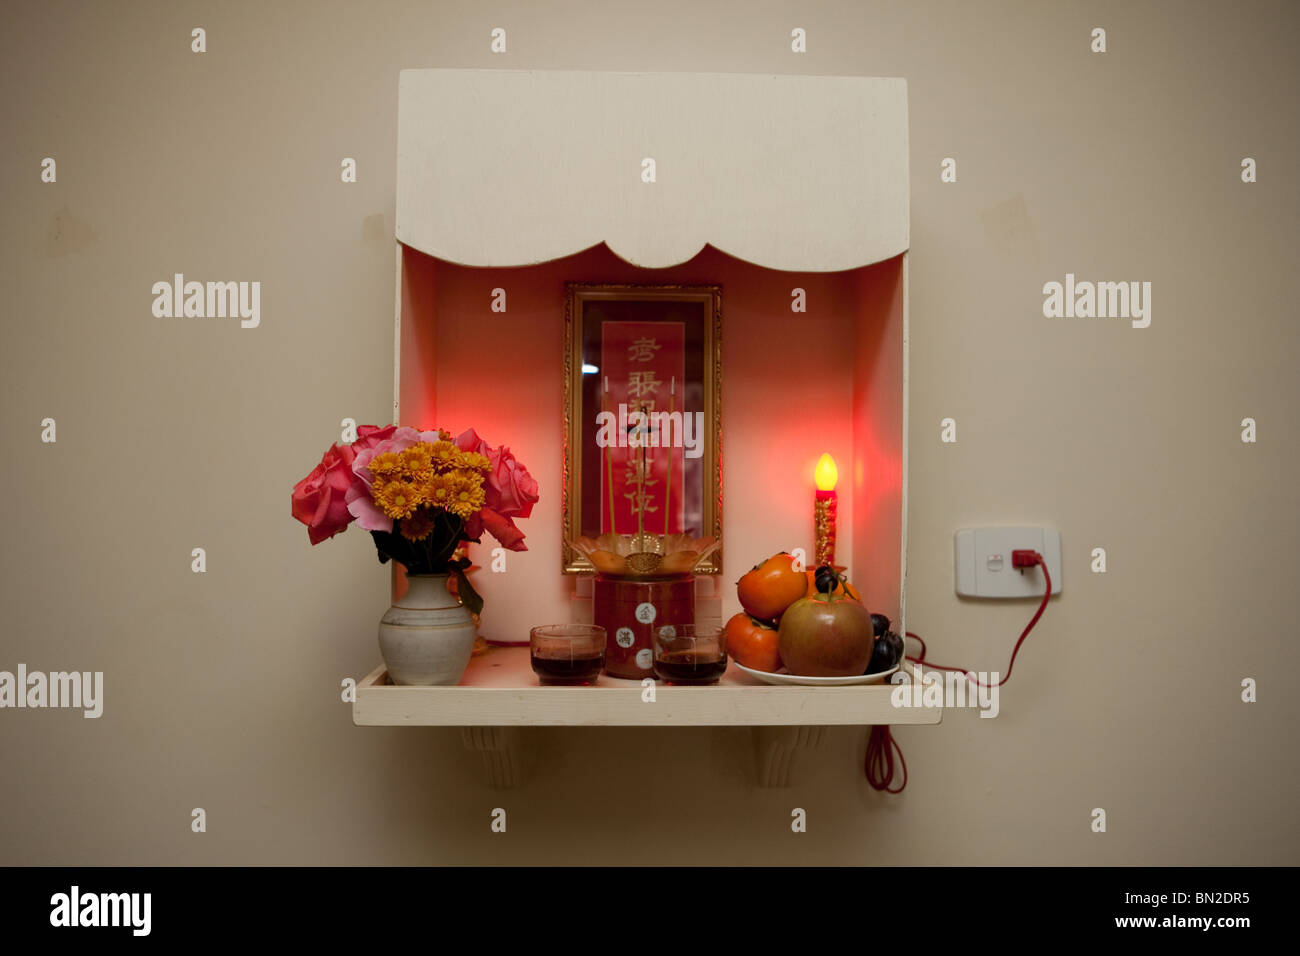 Photo Buddhist Altar Designs For Home Images 100 Buddhist Altar